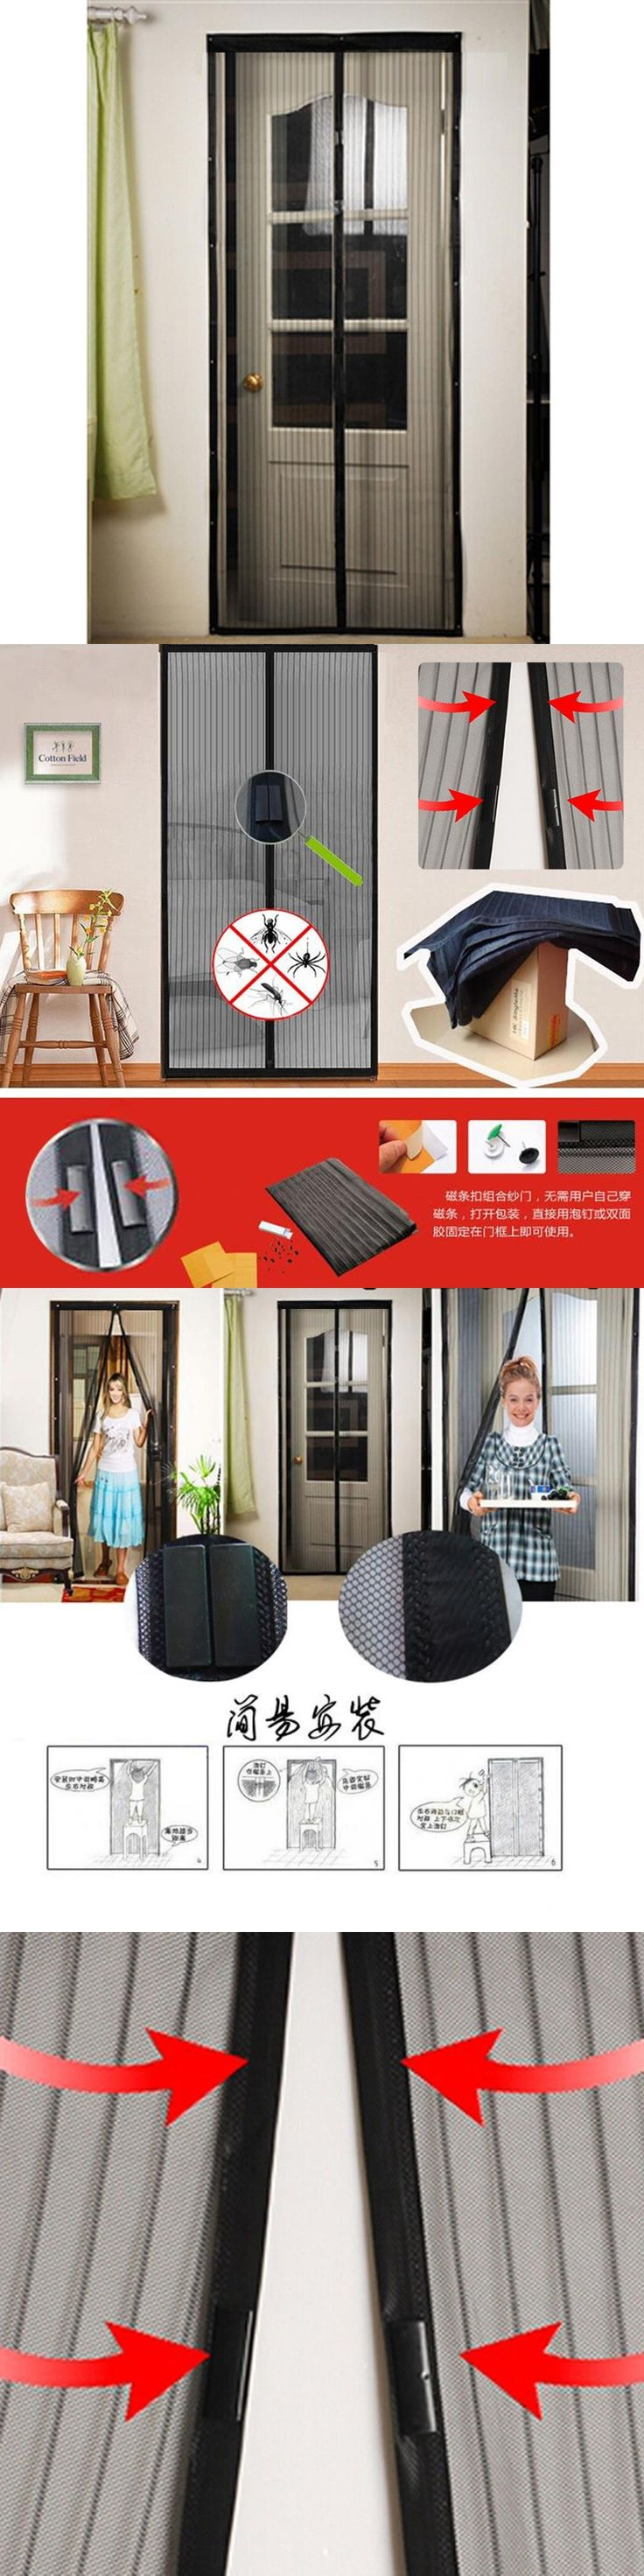 Sale Summer mosquito net curtain magnets door Mesh Insect Fly Bug Mosquito Door Curtain Net Netting Mesh Screen Magnets +B +P